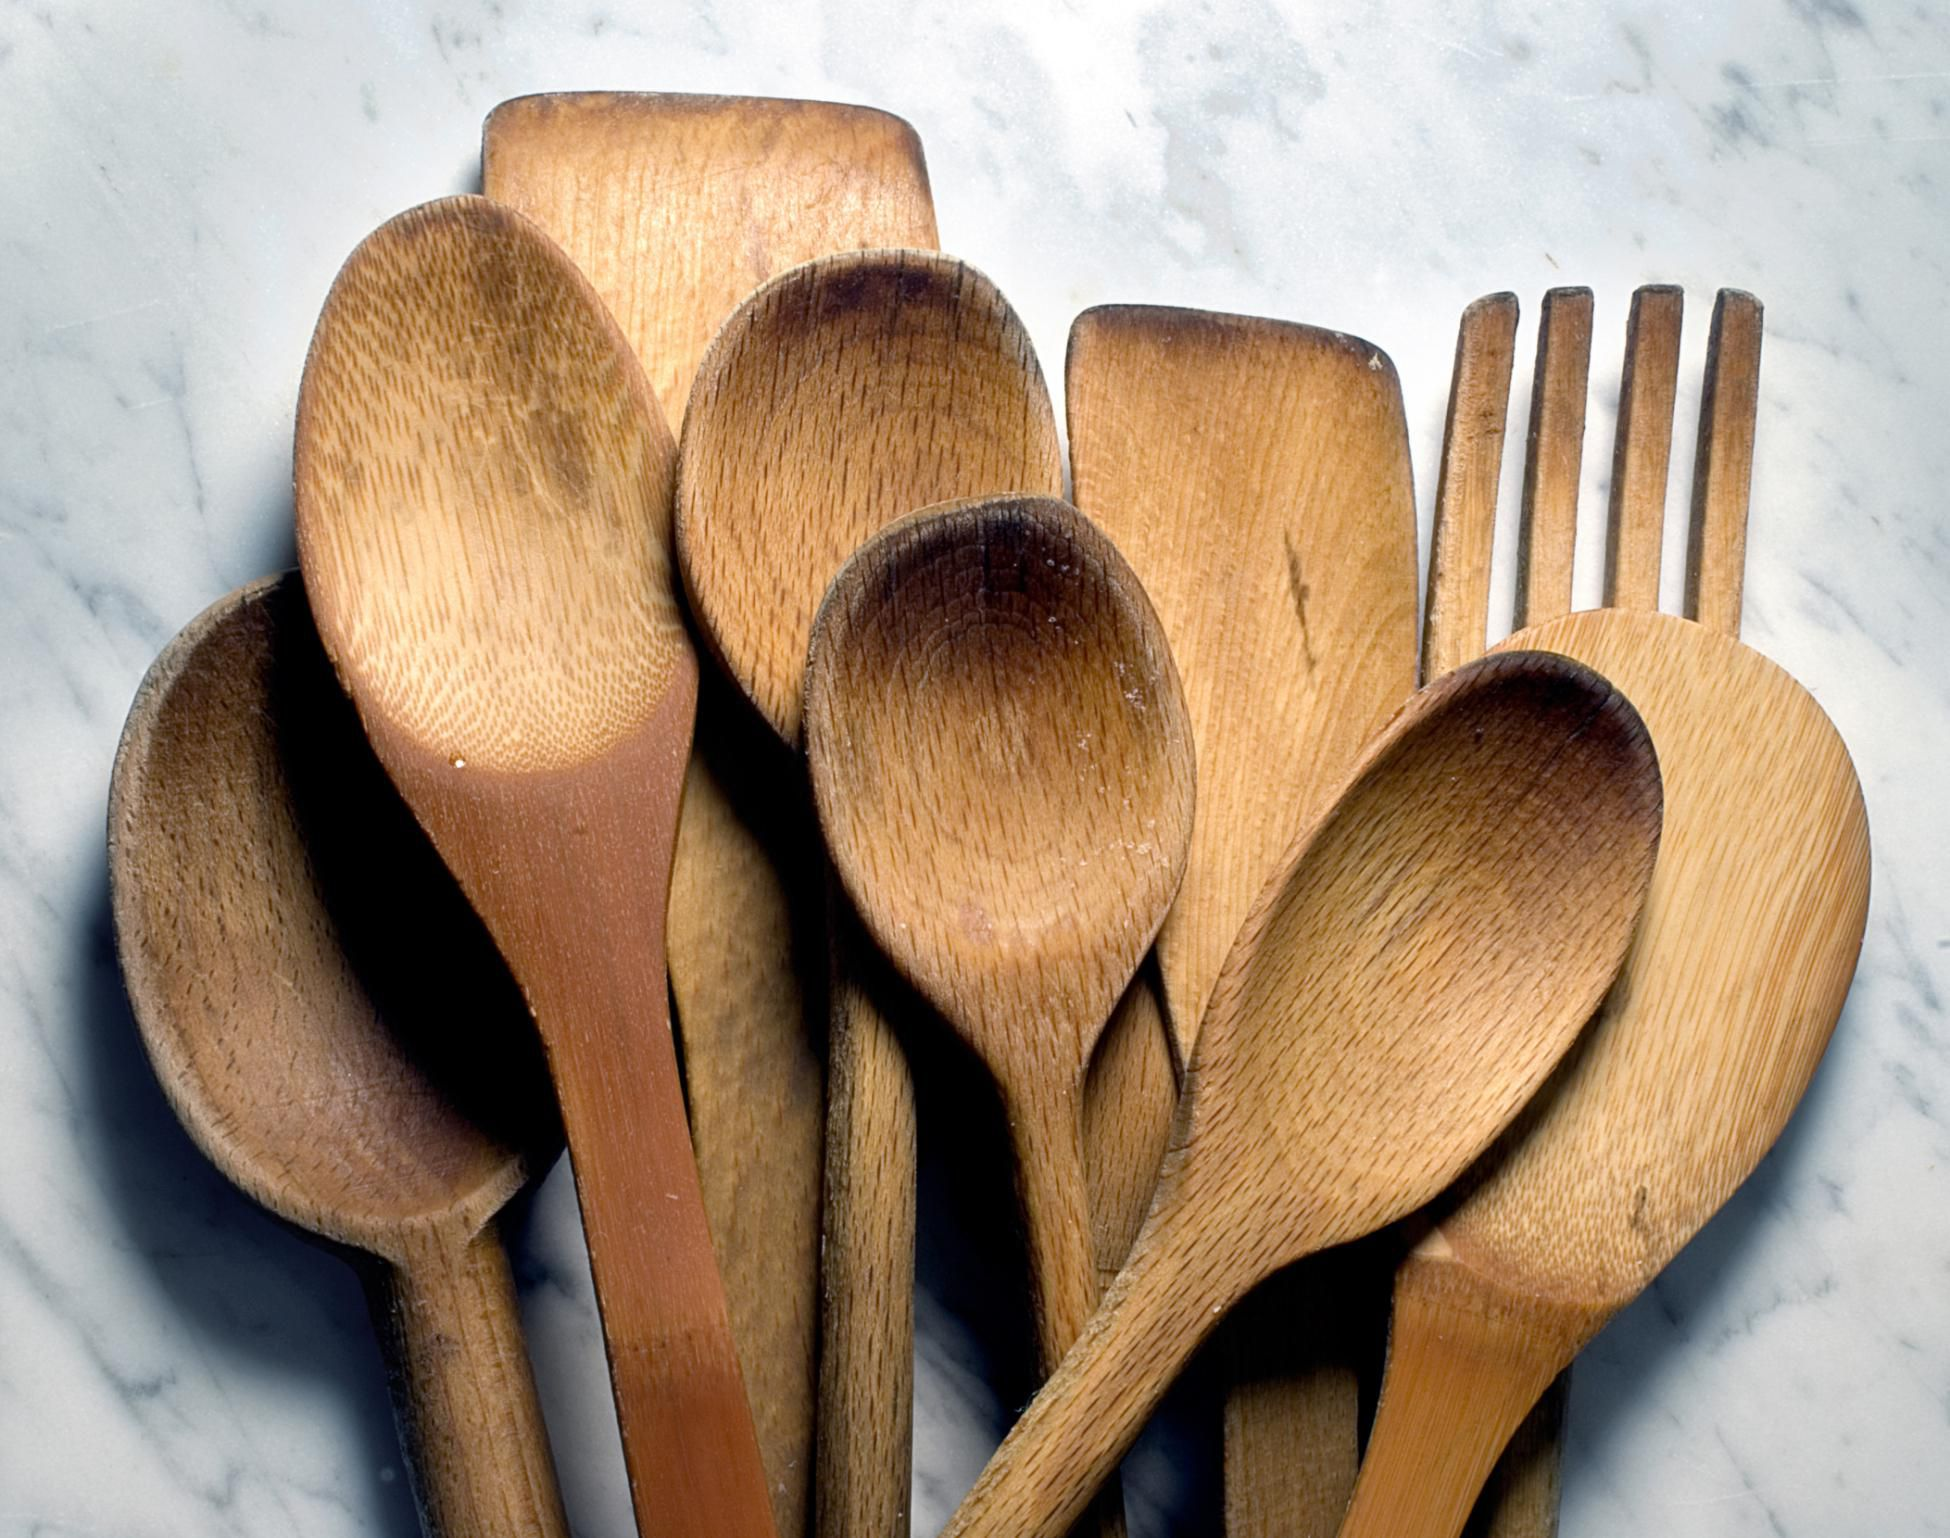 Caring for Wooden Spoons and Other Utensils